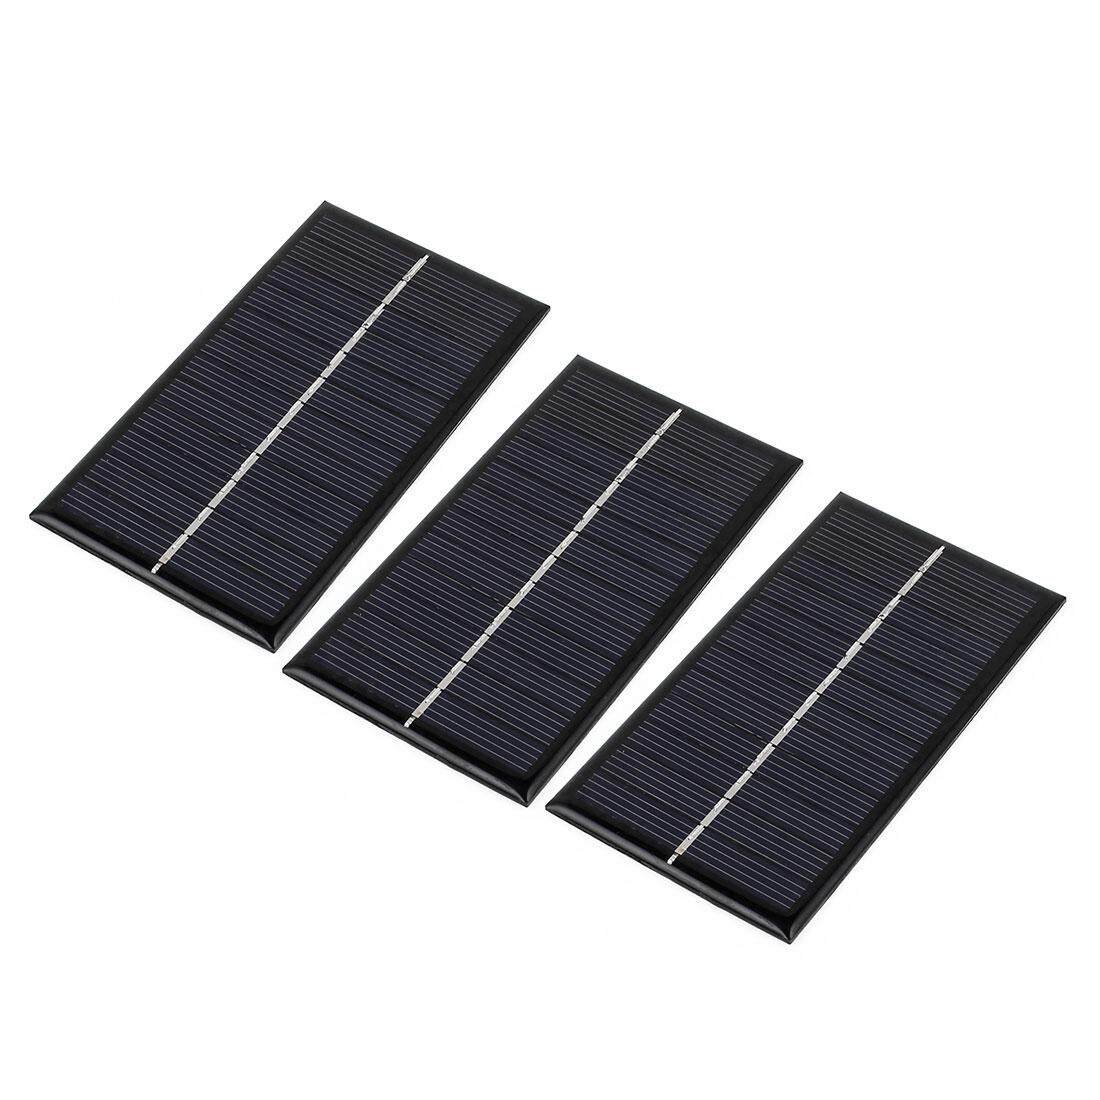 Buy Sell Cheapest 6v 1w Solar Best Quality Product Deals Sel Mini Cell Surya Module Axa 3pcs Dc Rectangle Energy Saving Panel For Charger